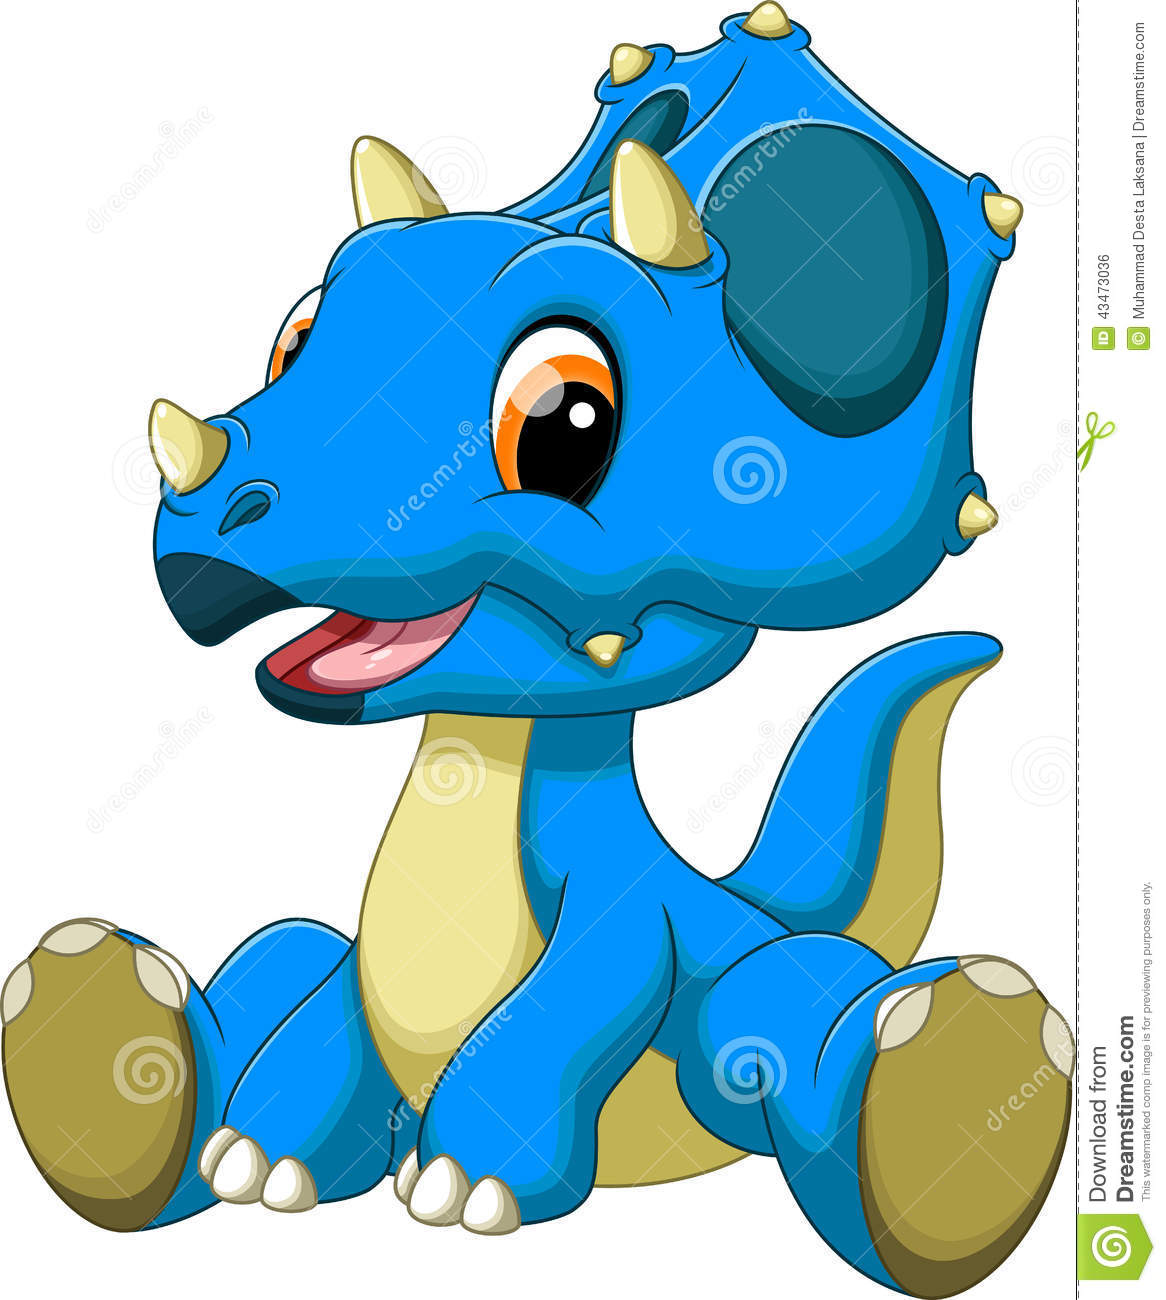 cute baby triceratops cartoon stock illustration image baby dino clipart cute baby dinosaurs clipart